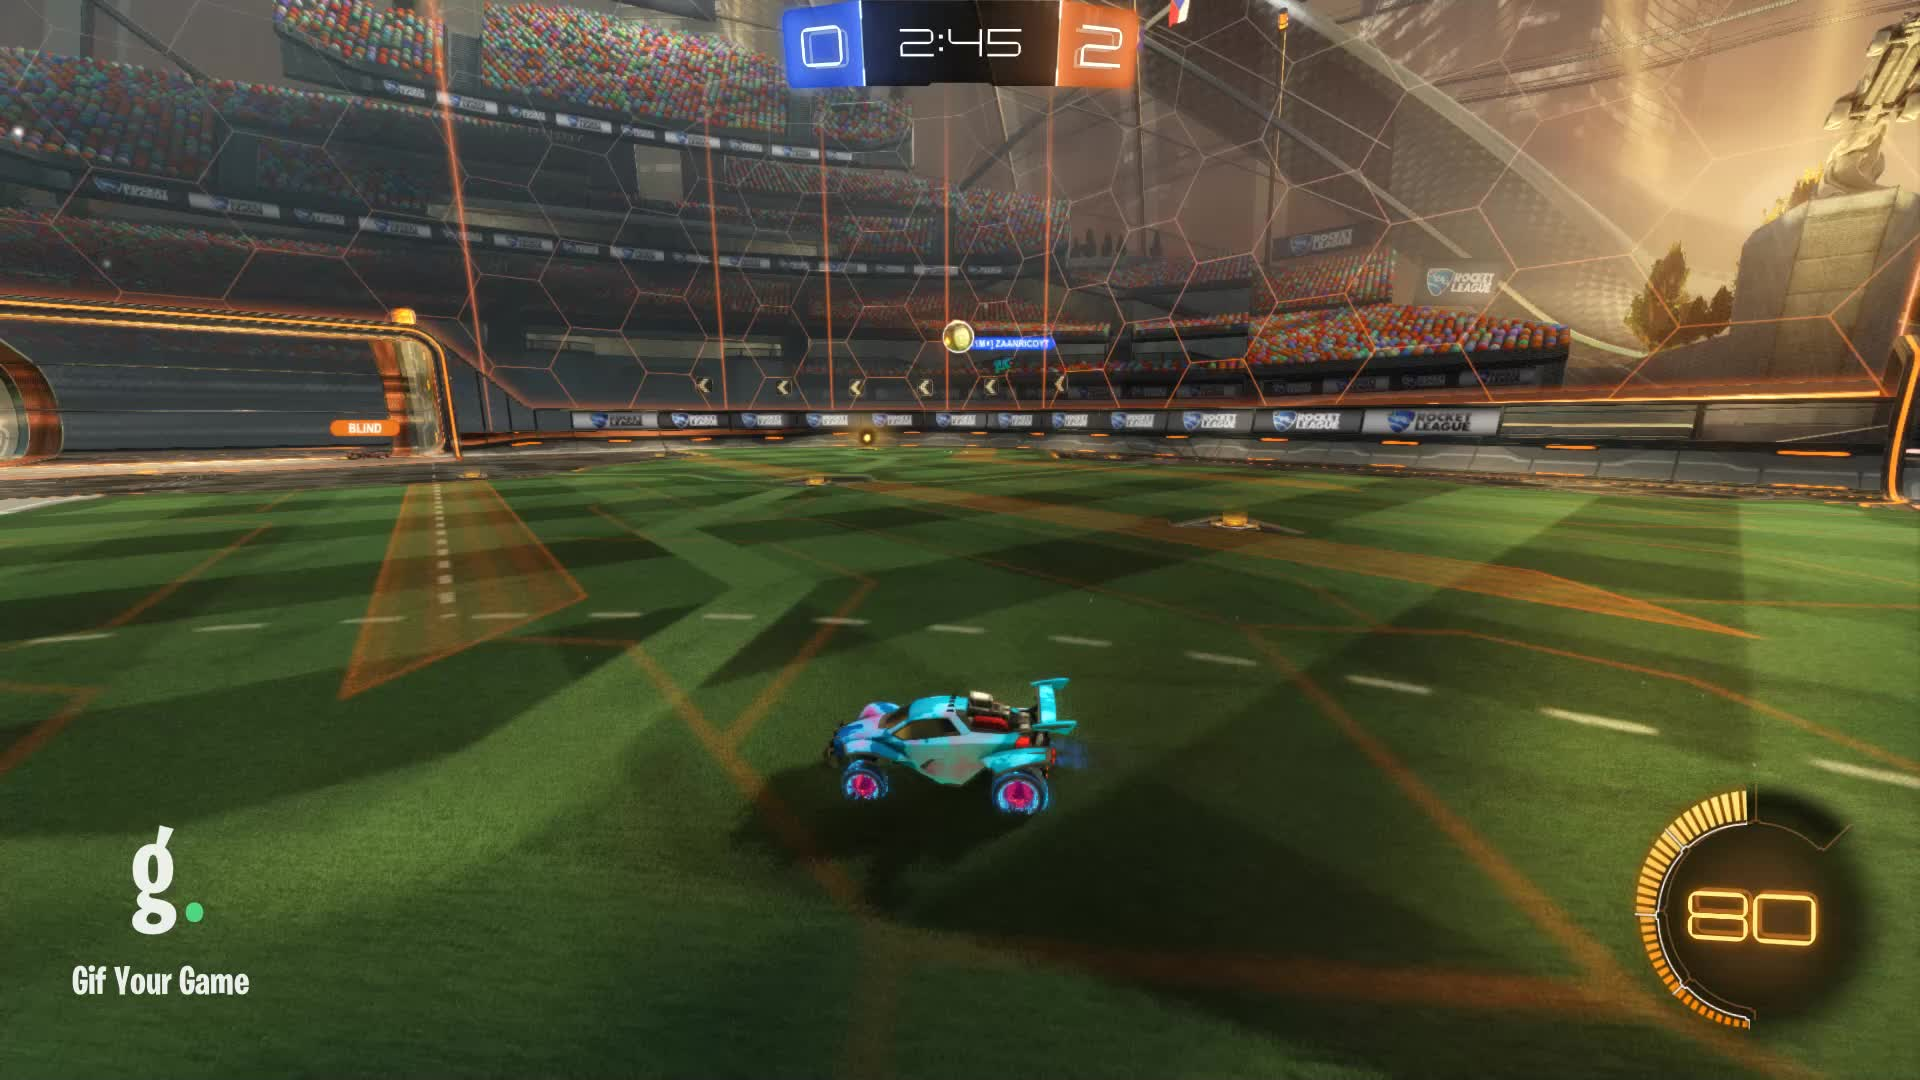 Gif Your Game, GifYourGame, Goal, Rocket League, RocketLeague, Timper [NL], Goal 3: Timper [NL] GIFs